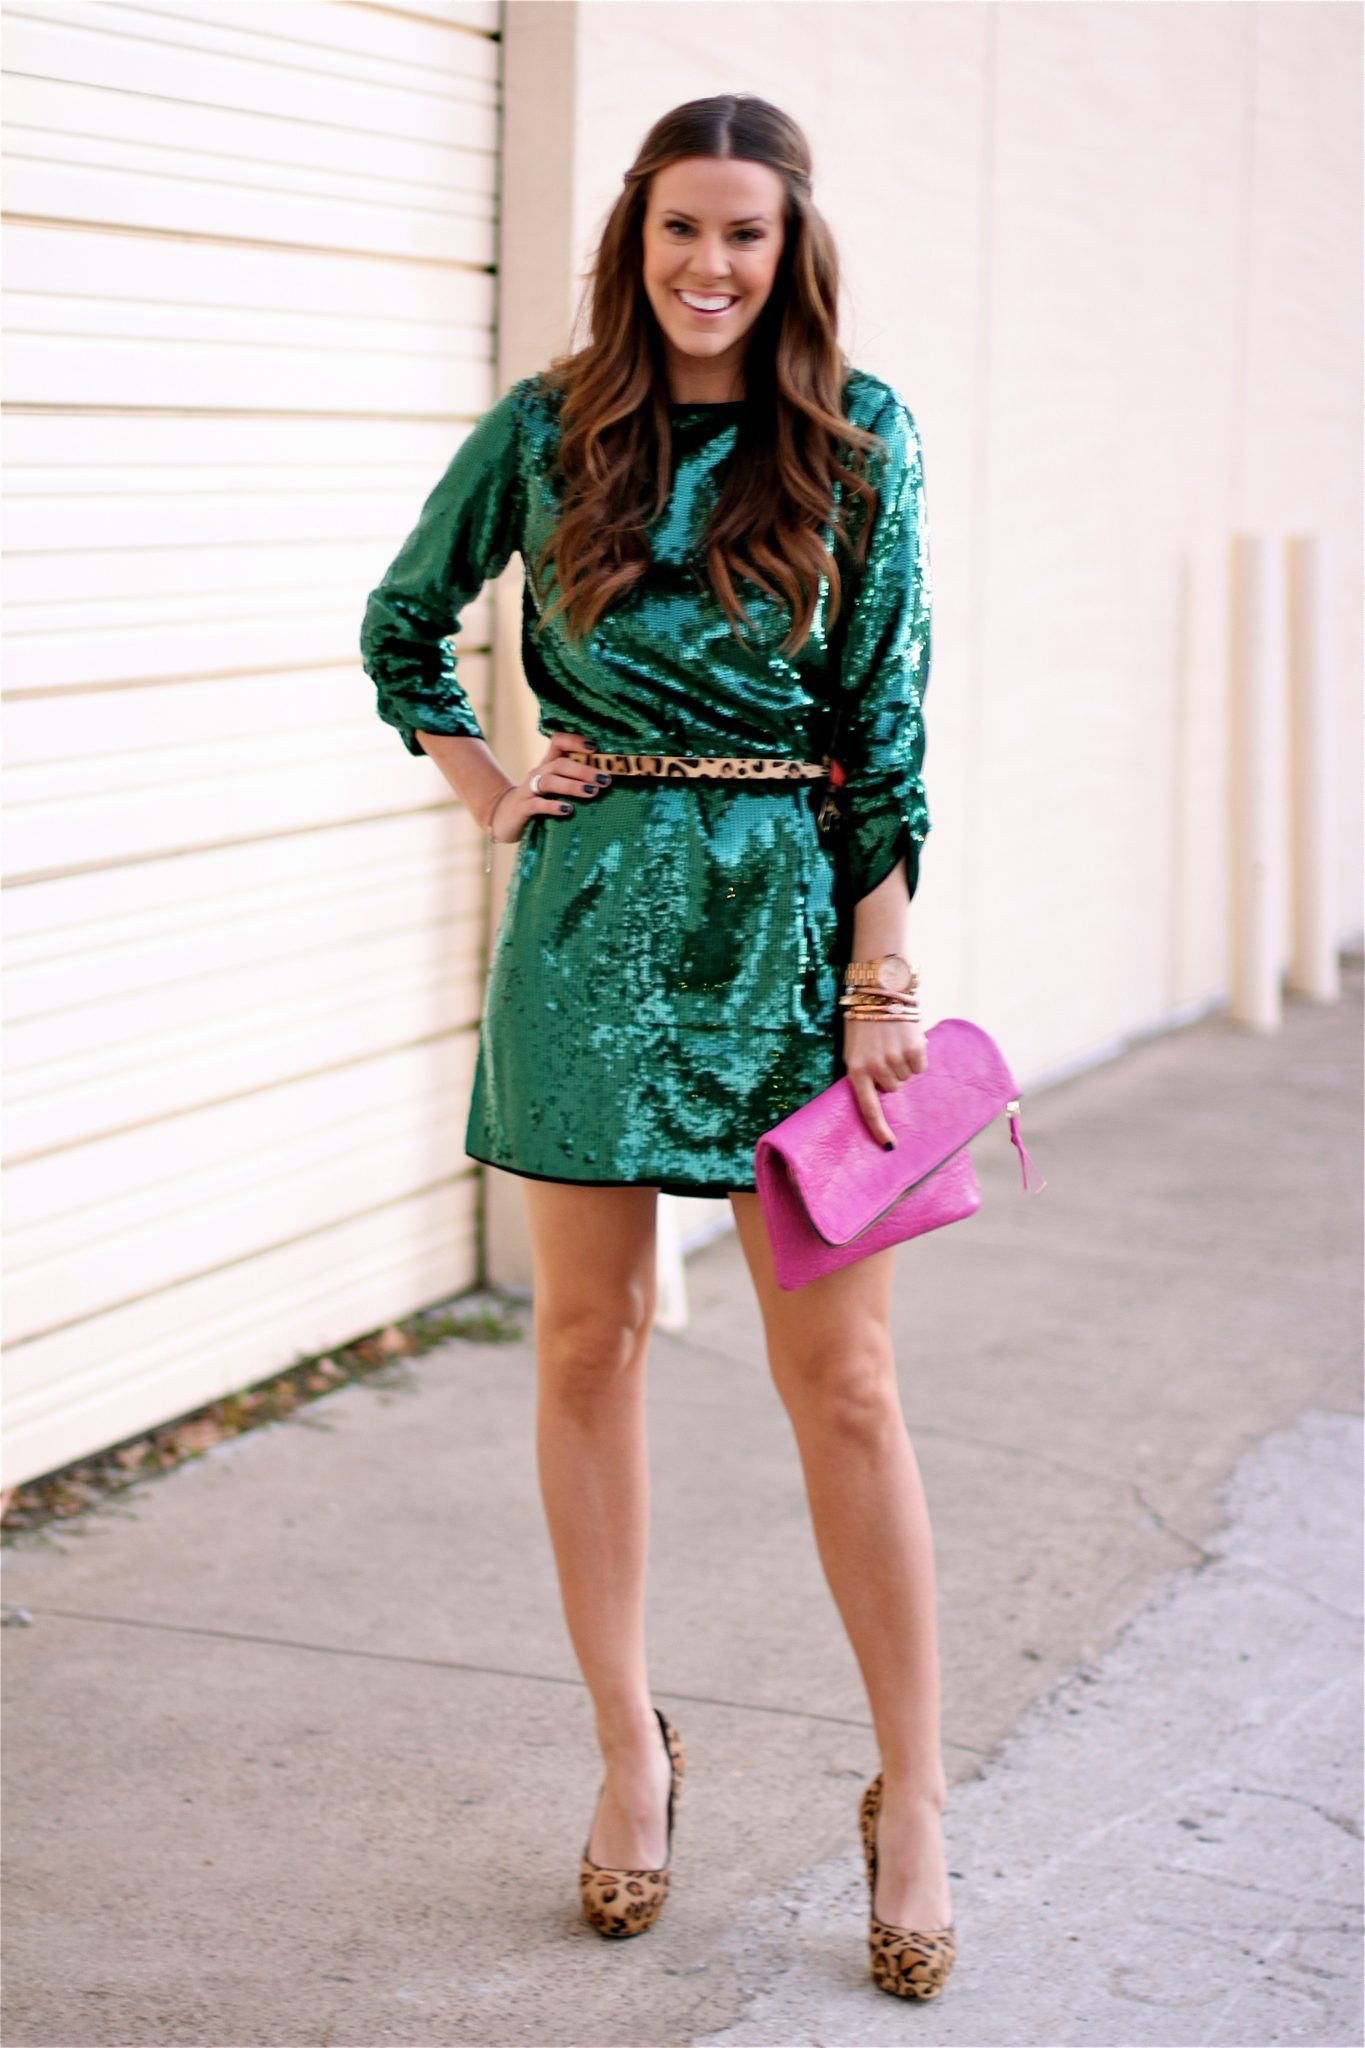 Green with envy fashion 82